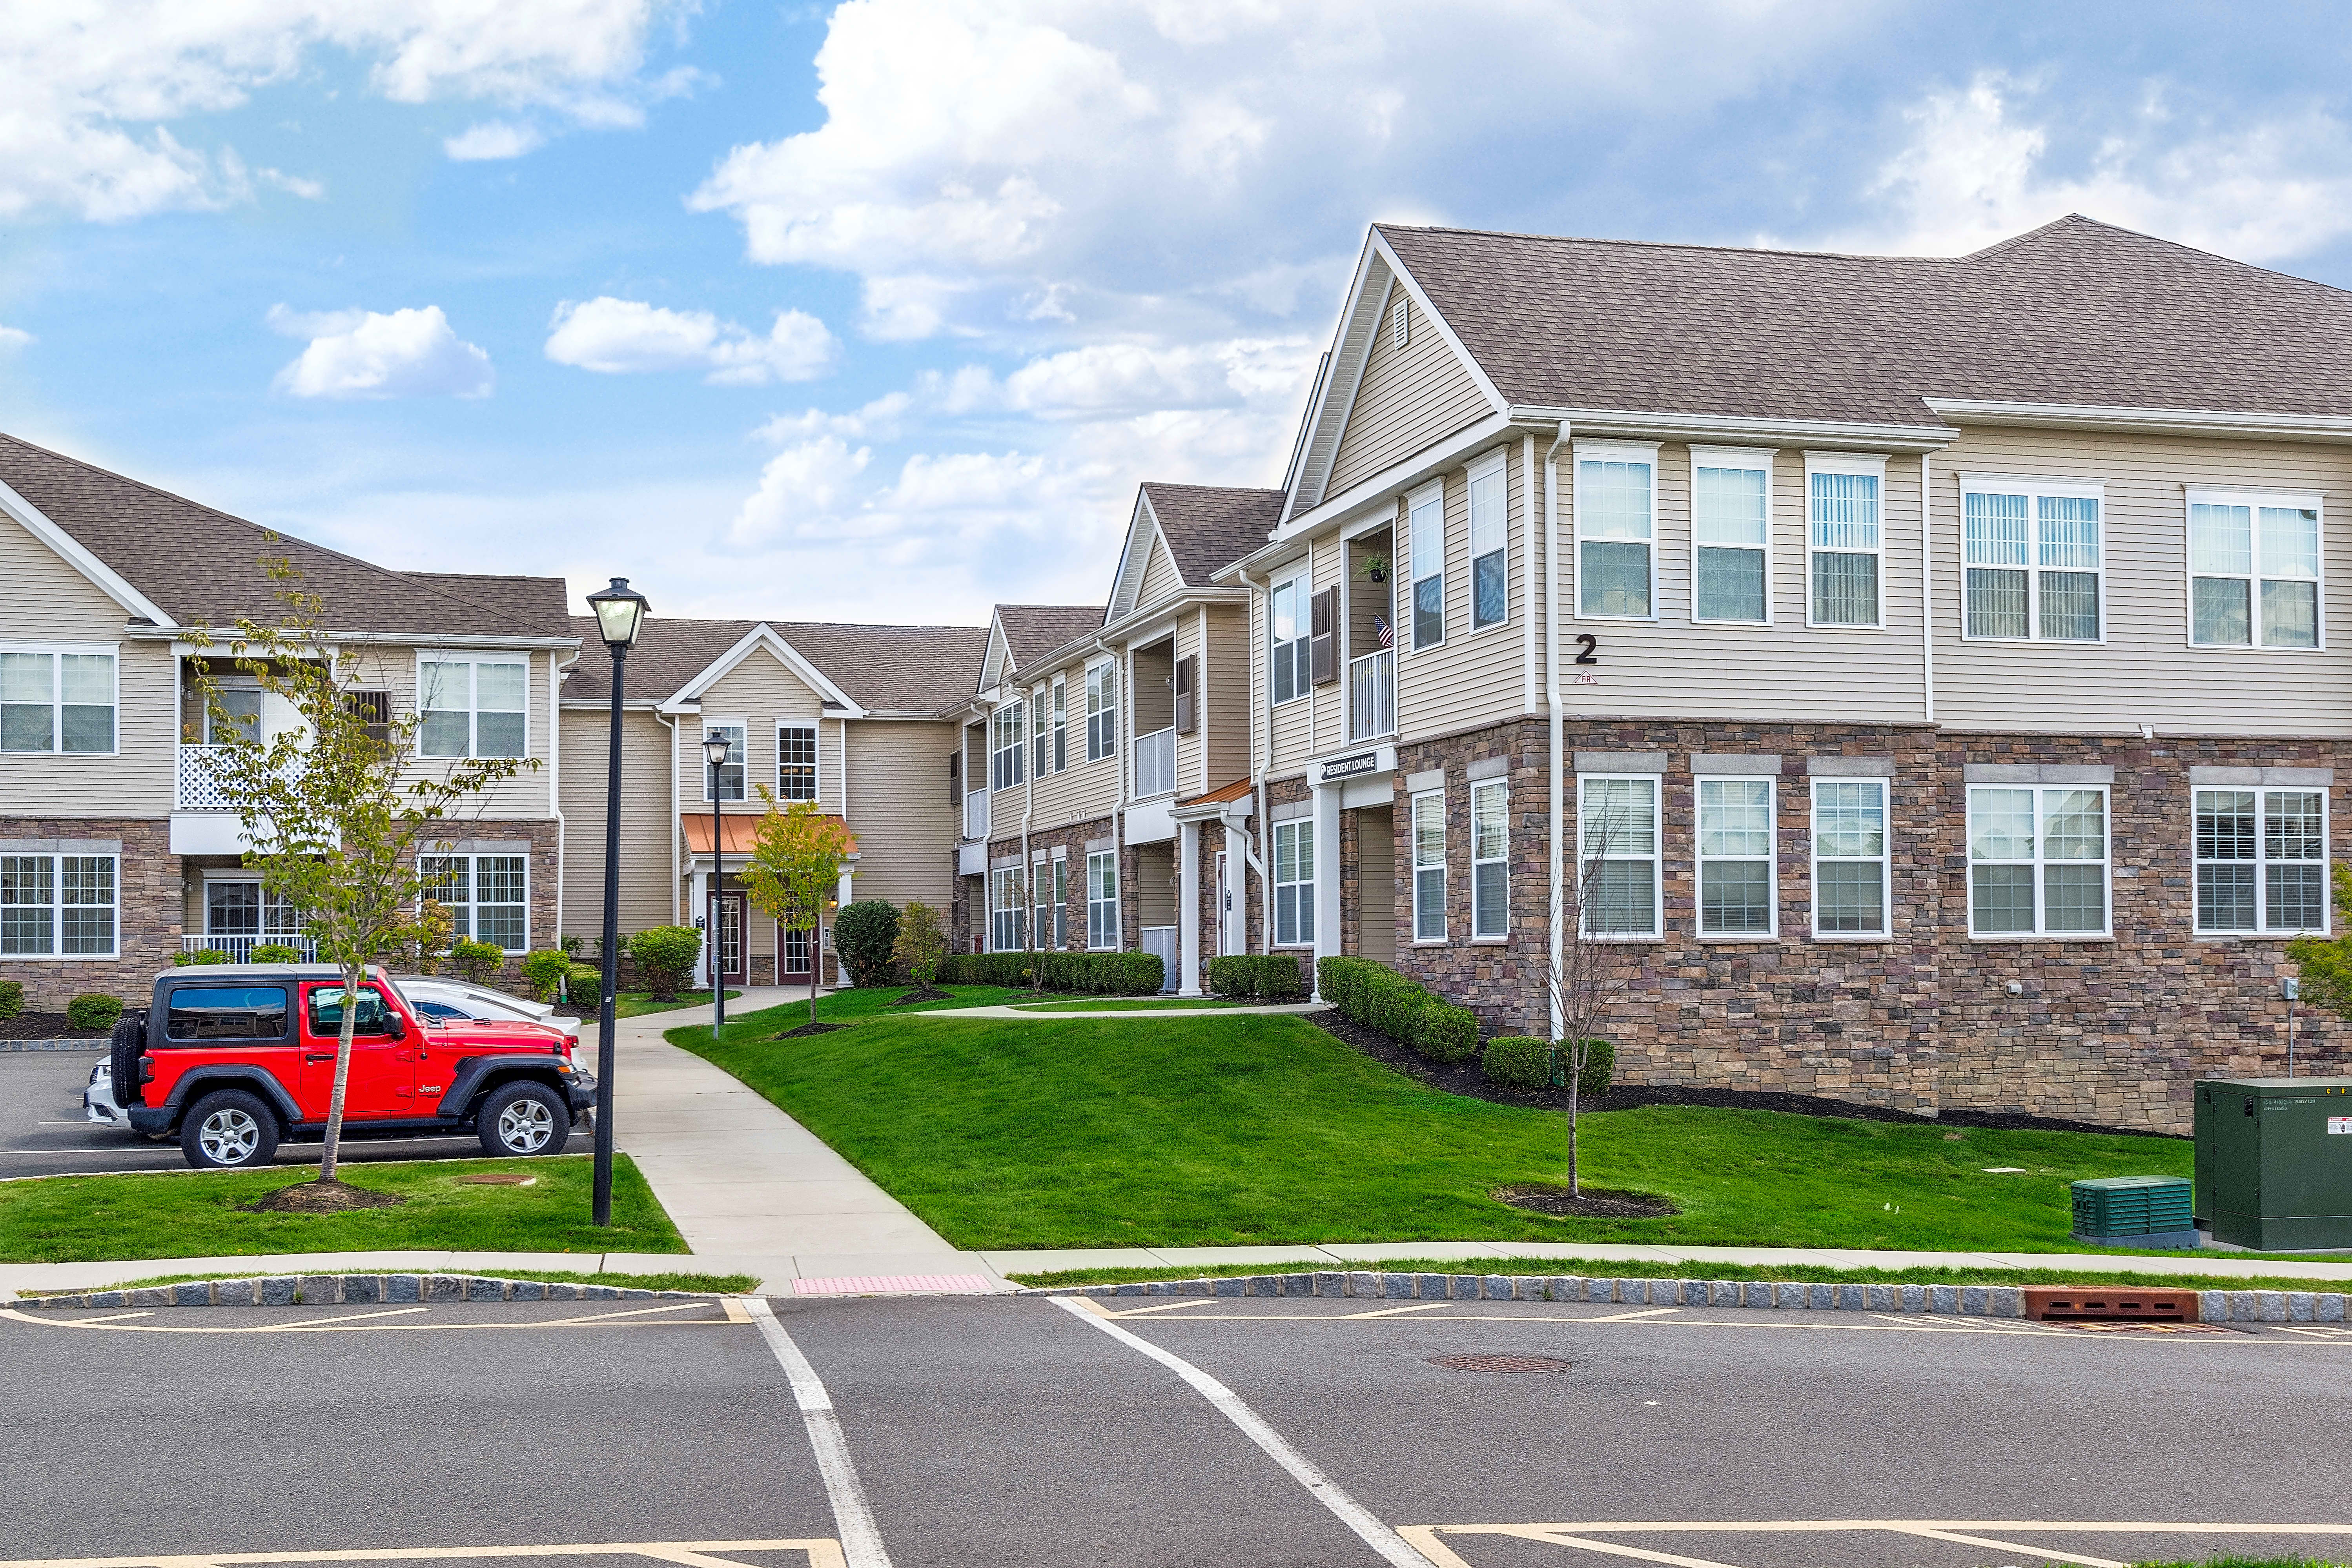 Apartments Near Rutgers Camelot at Townelake for Rutgers University Students in New Brunswick, NJ